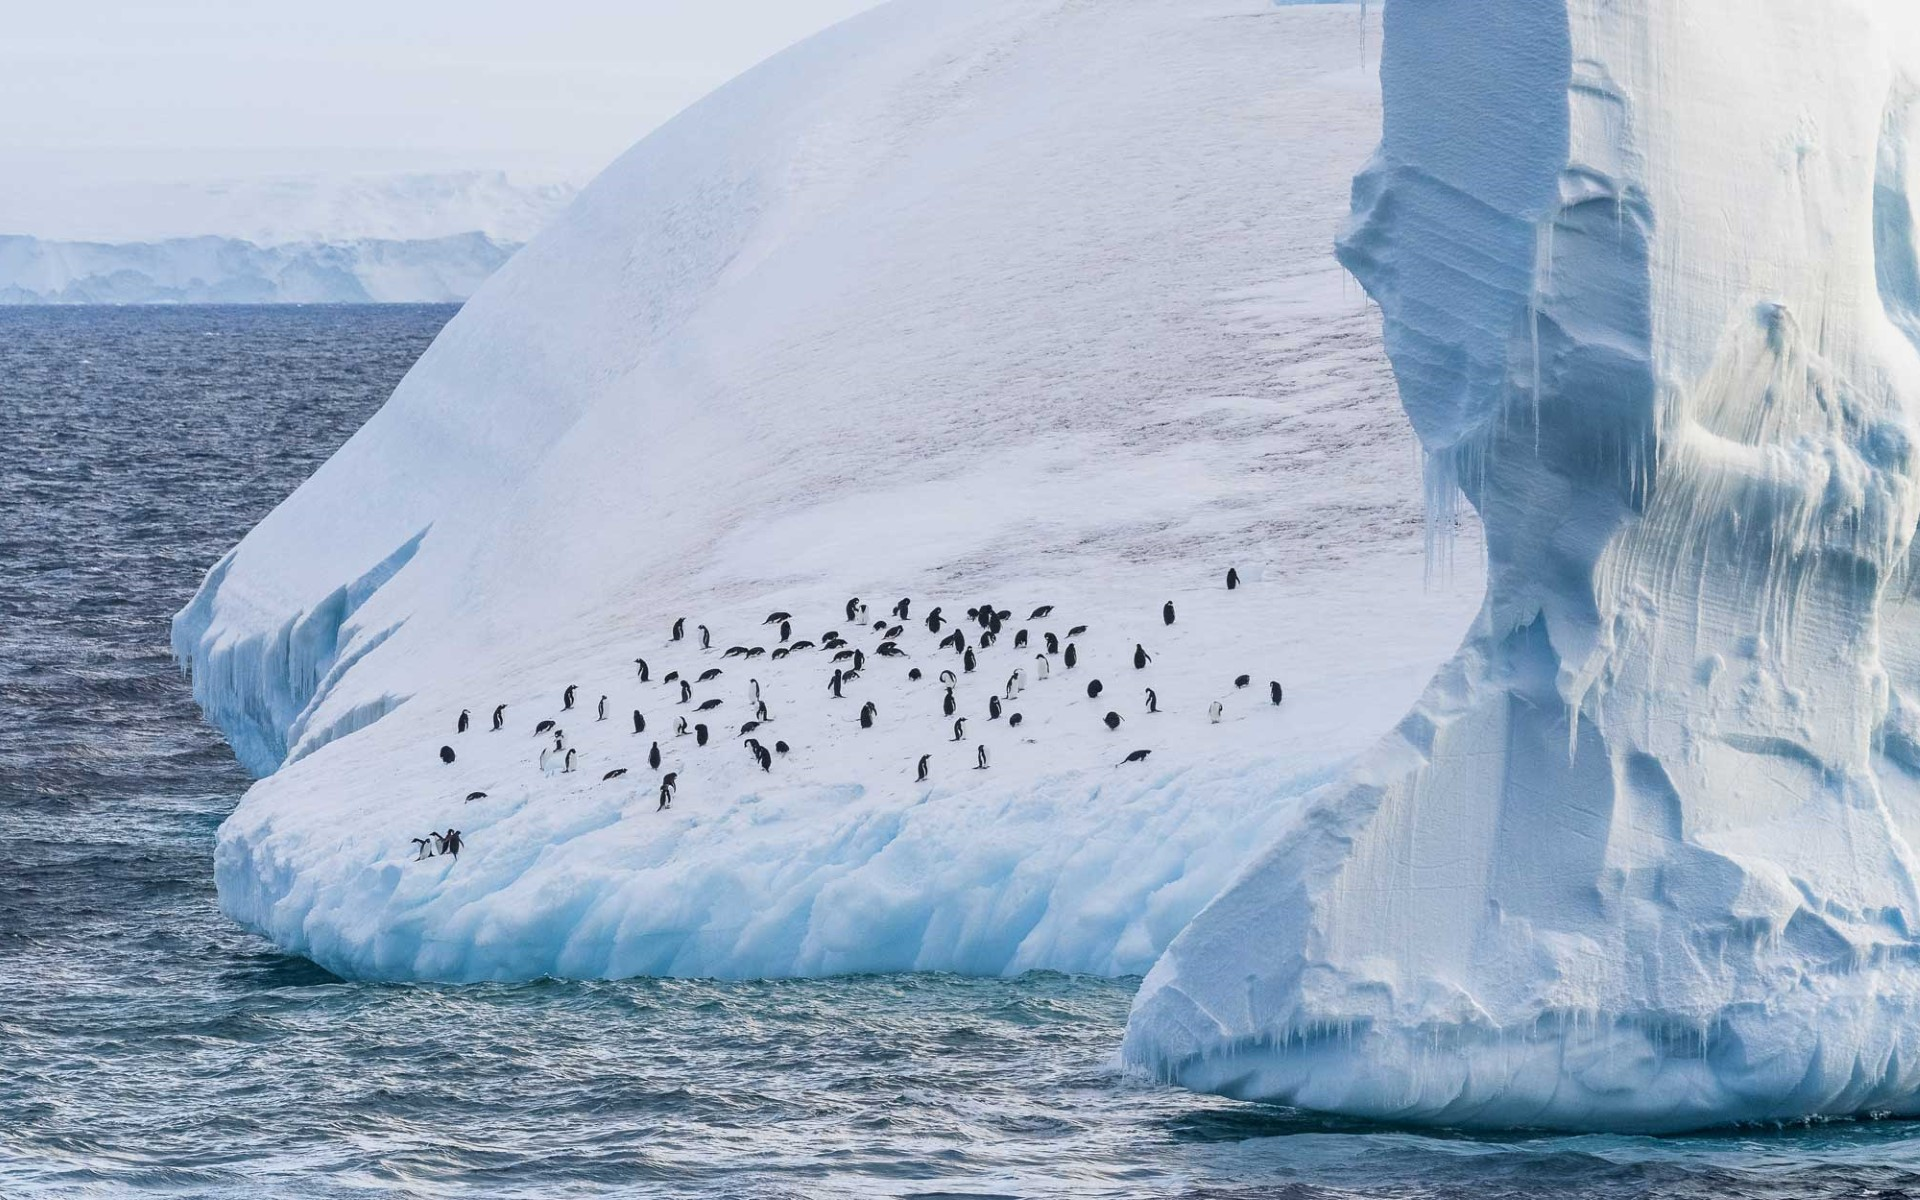 Penguins on a giant iceberg in the Antarctic sound